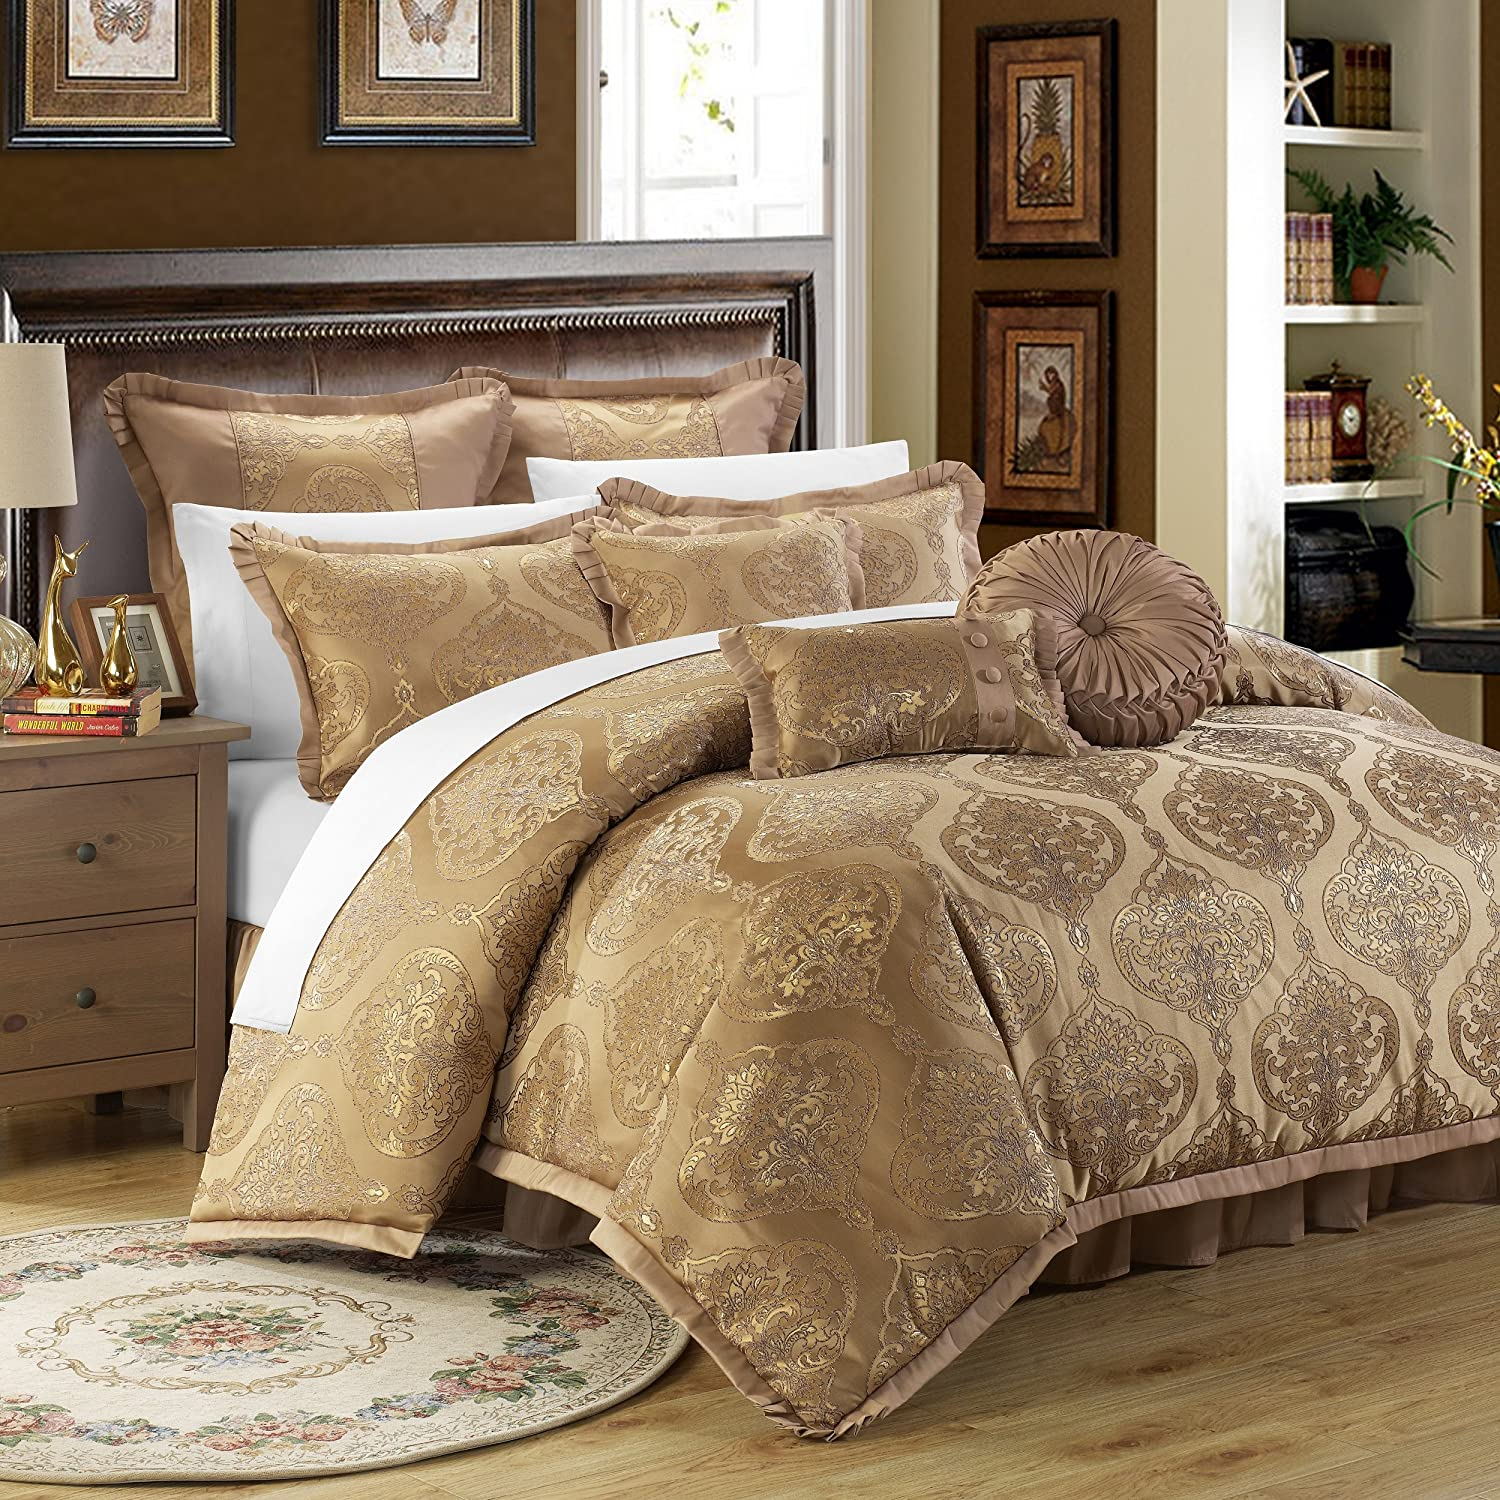 Chic Home 9 Piece Como Decorator Upholstery Quality Jacquard Motif Fabric Bedroom Comforter Set